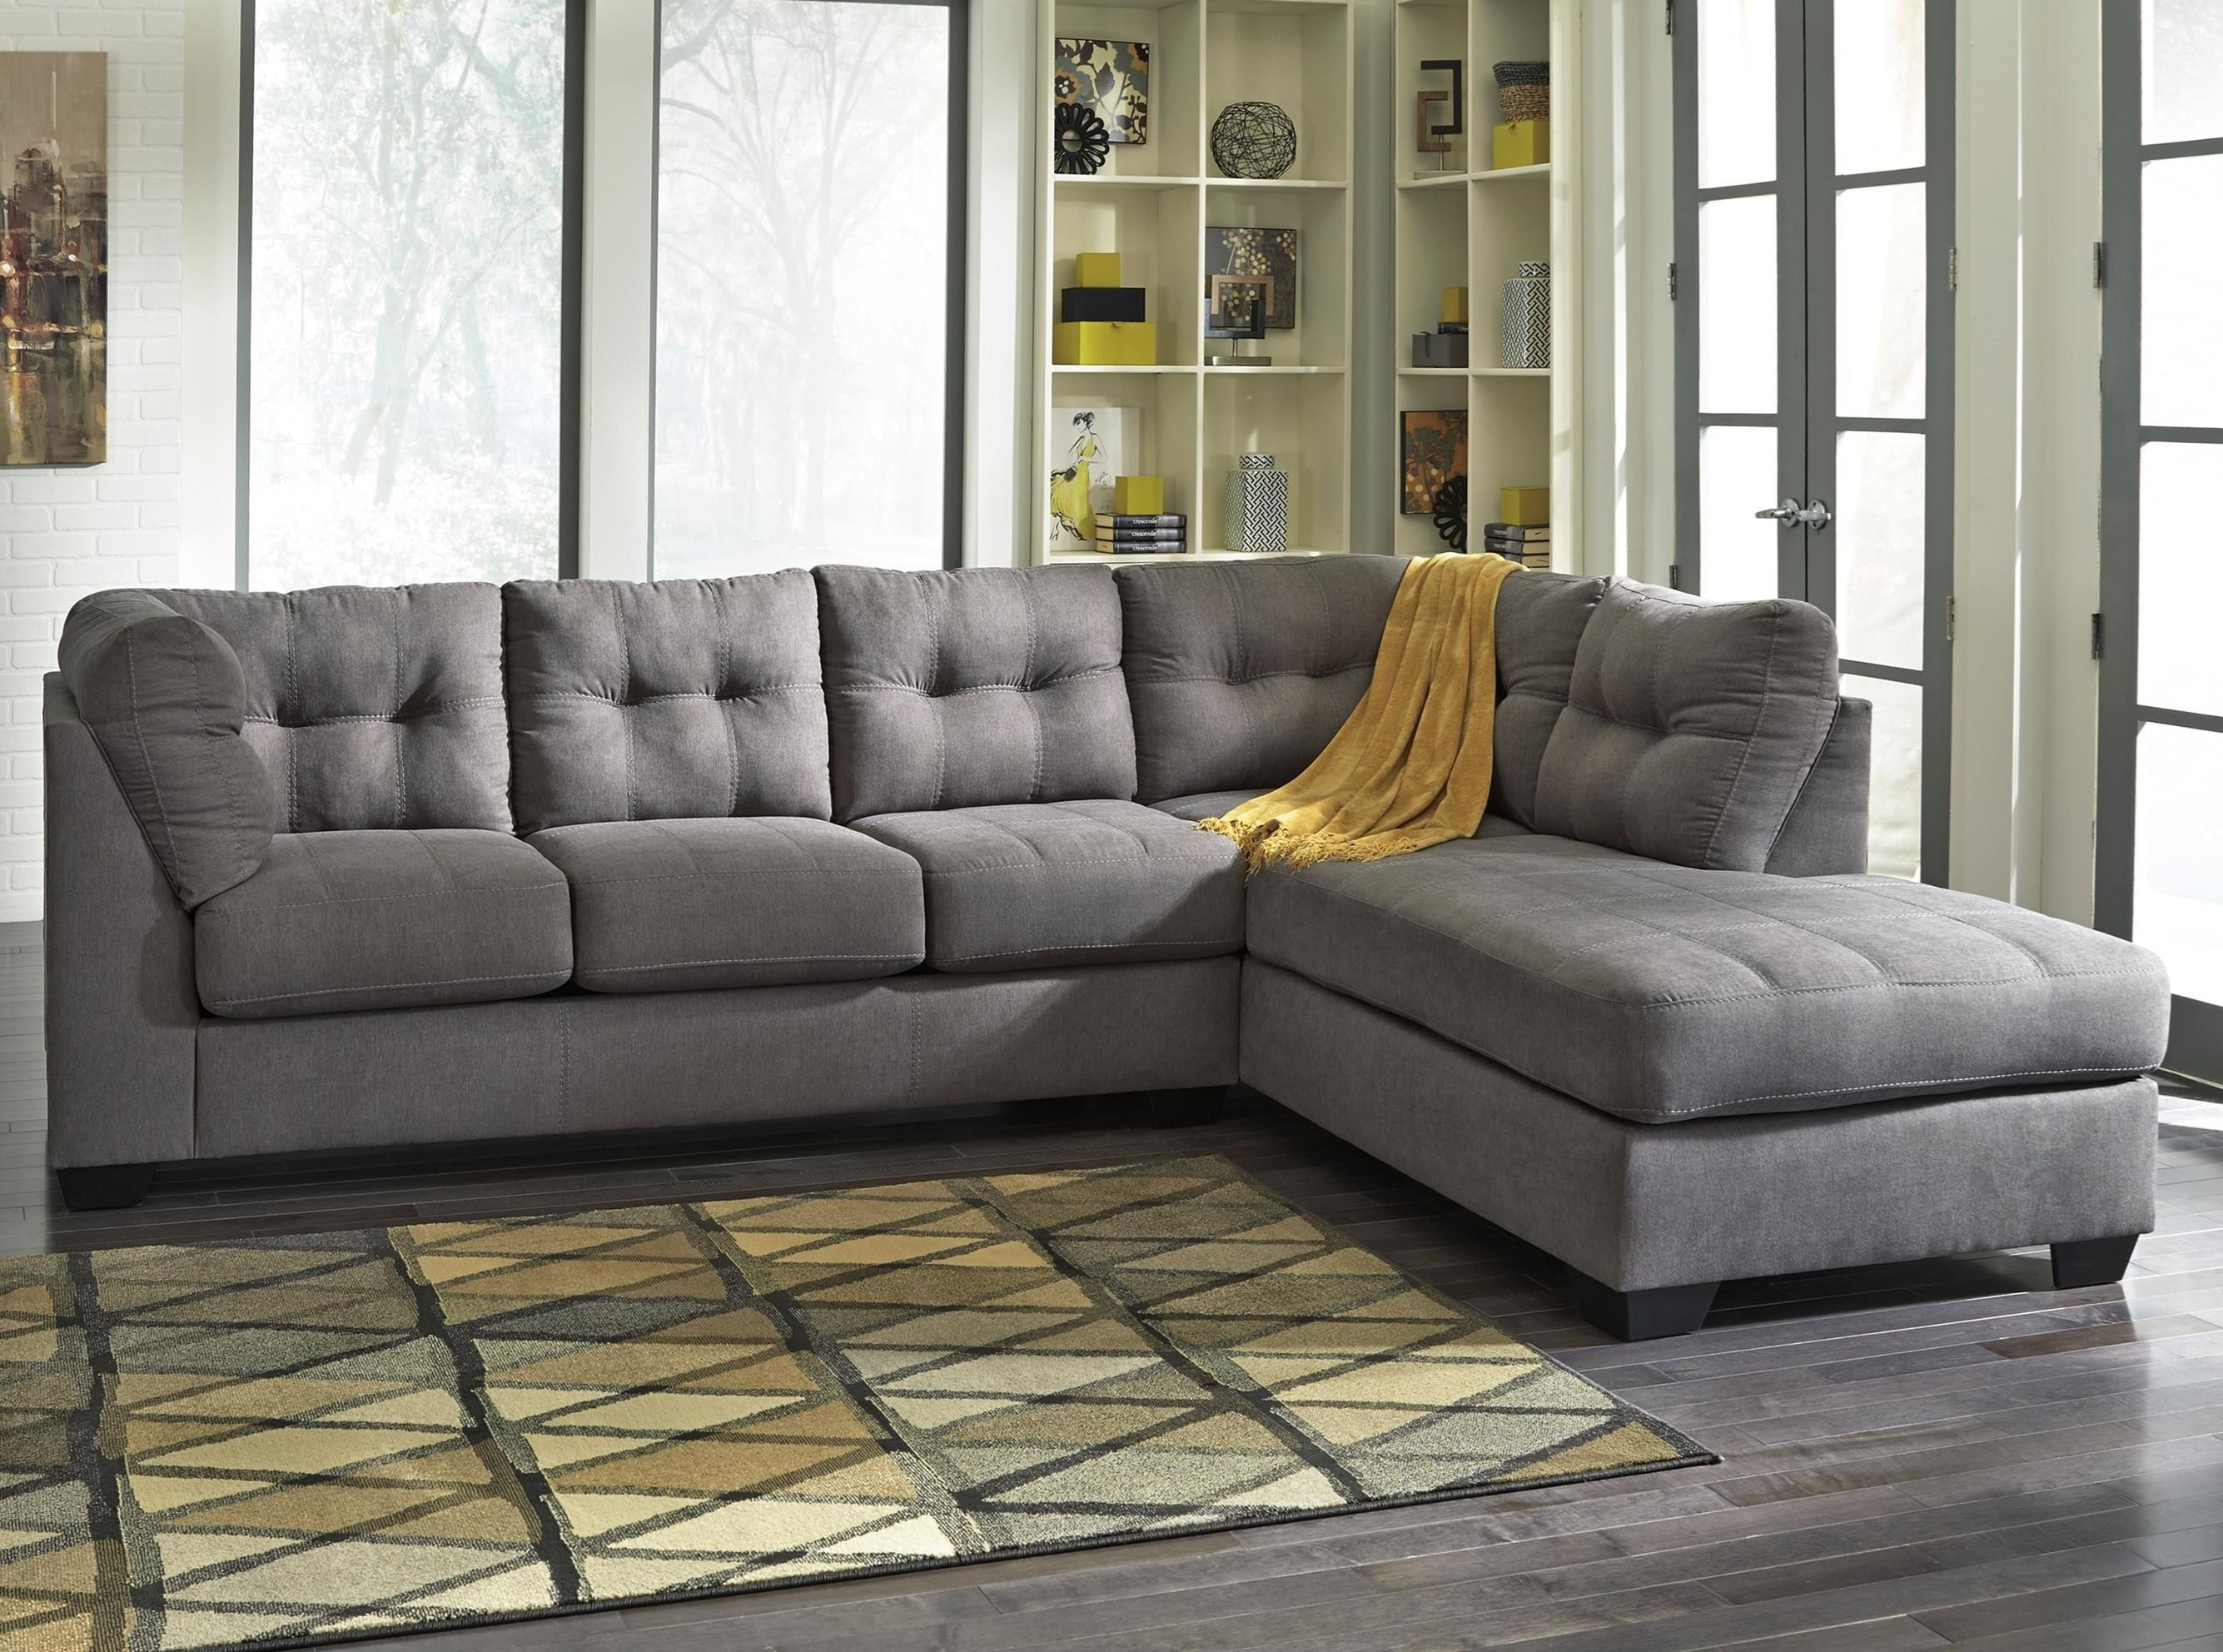 Maier 2-Piece Sectional with Chaise by Benchcraft at Zak's Home Outlet